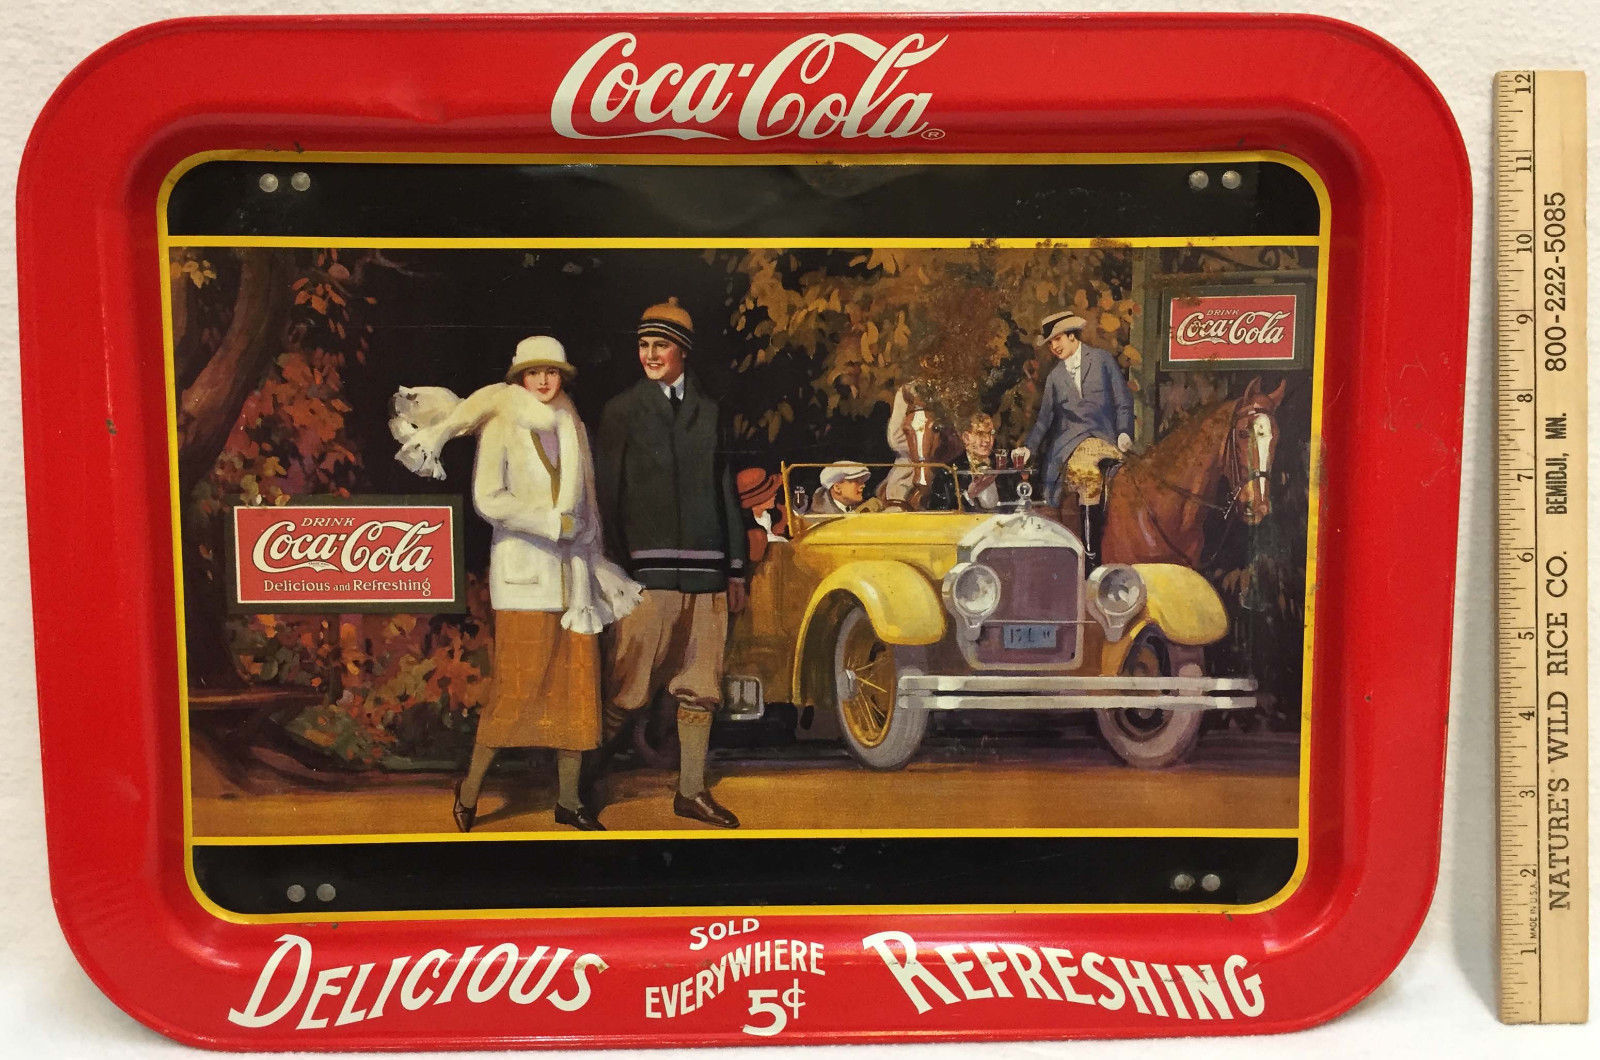 Primary image for Coca Cola Tray Folding Coke 1924 Touring Car & Young Couple 1987 Mfg Legs Serve